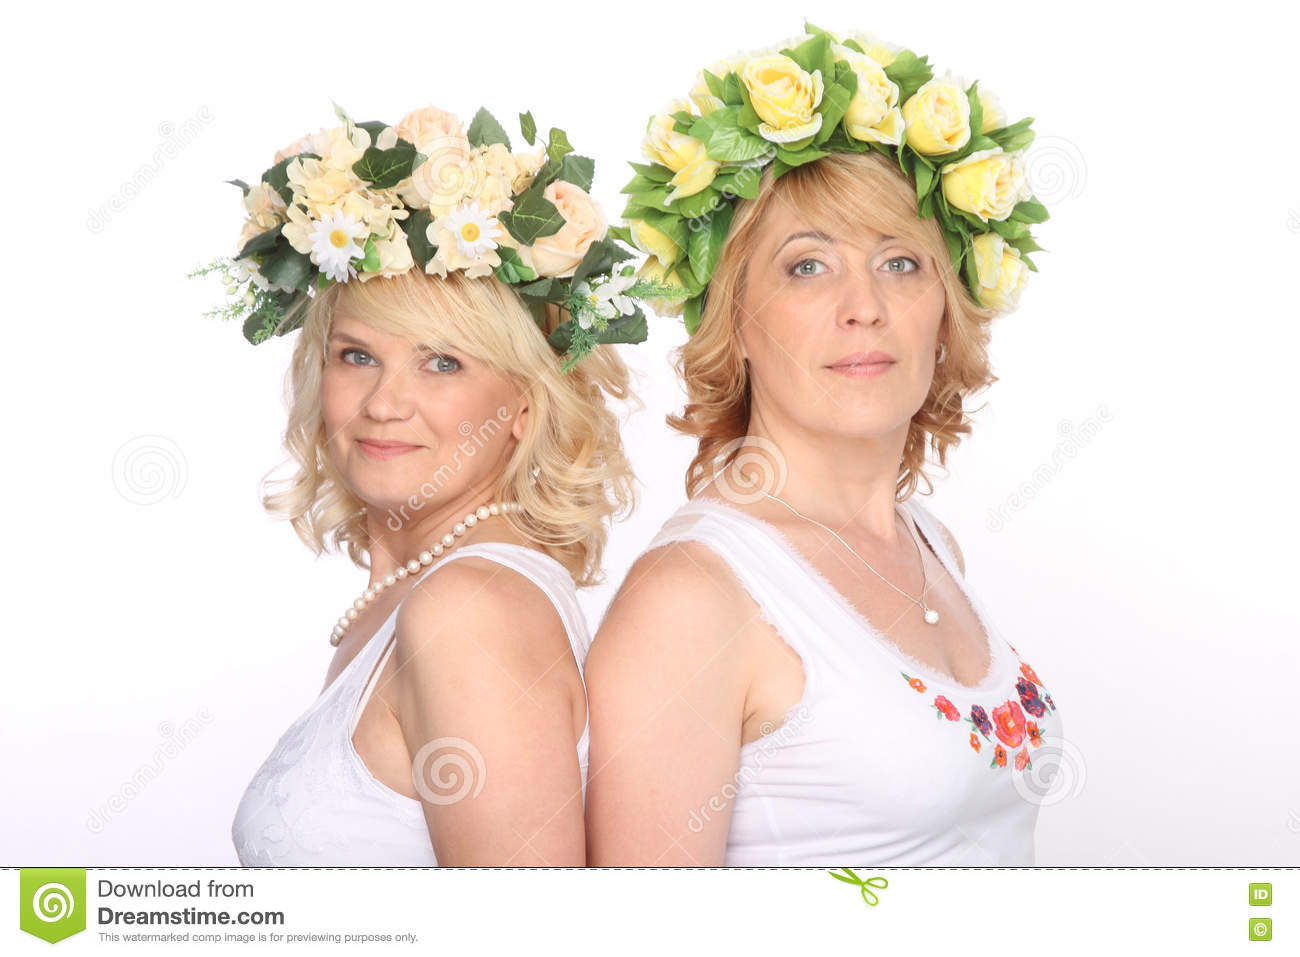 Two girlfriends blonde women in wreaths, smiling, standing backs